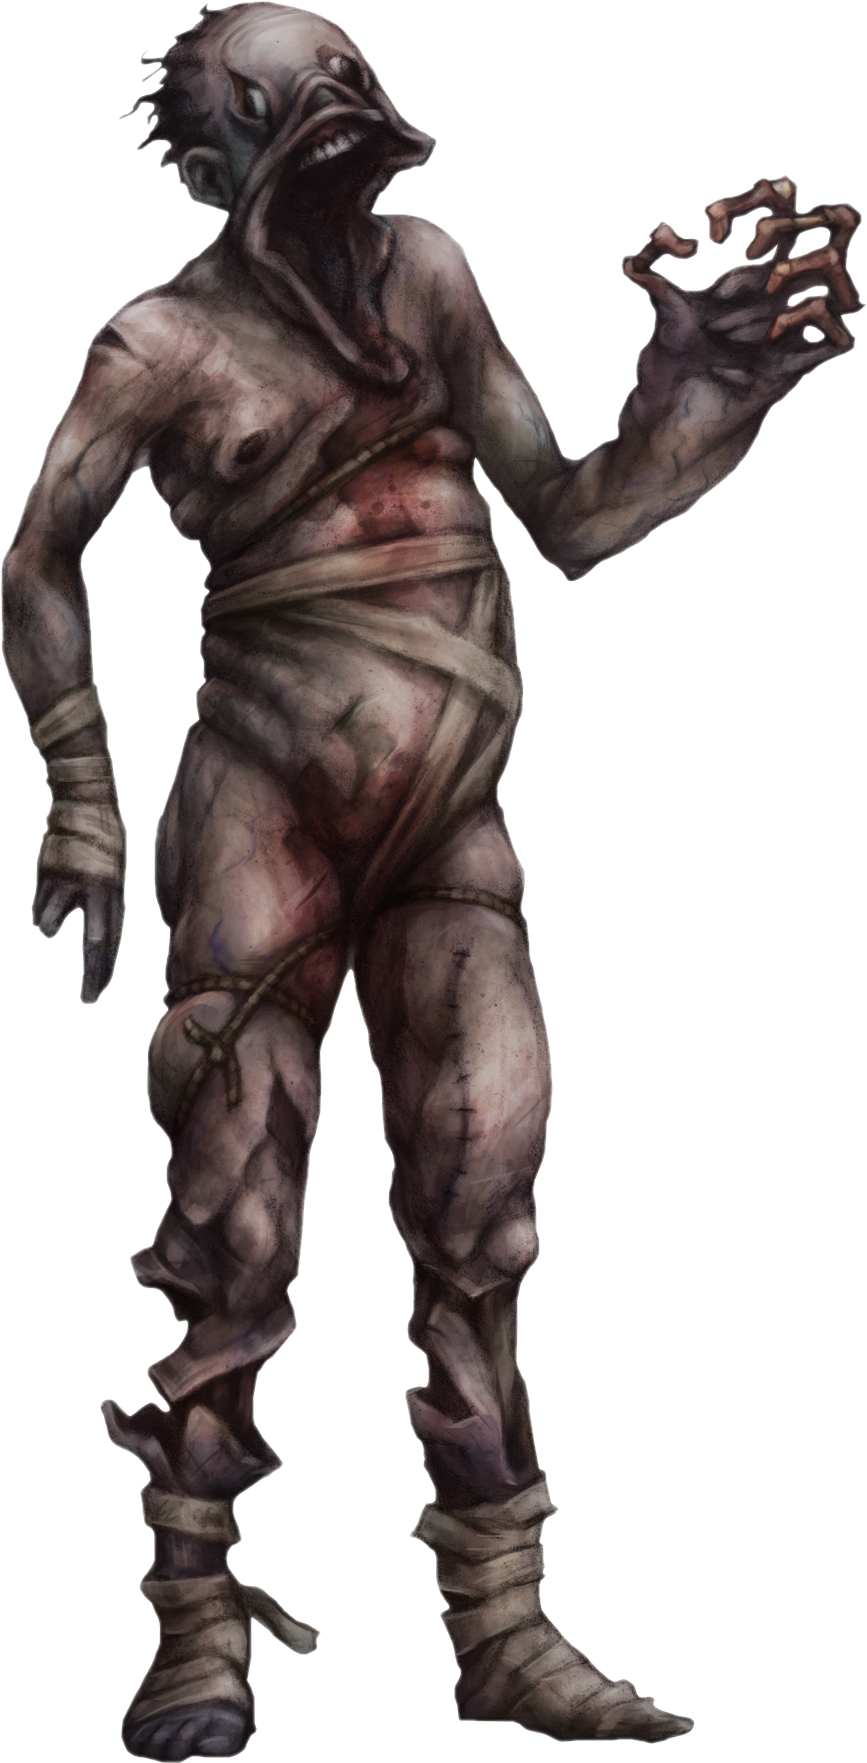 Download The Gatherers Amnesia Monster Concept Art Png Image With No Background Pngkey Com